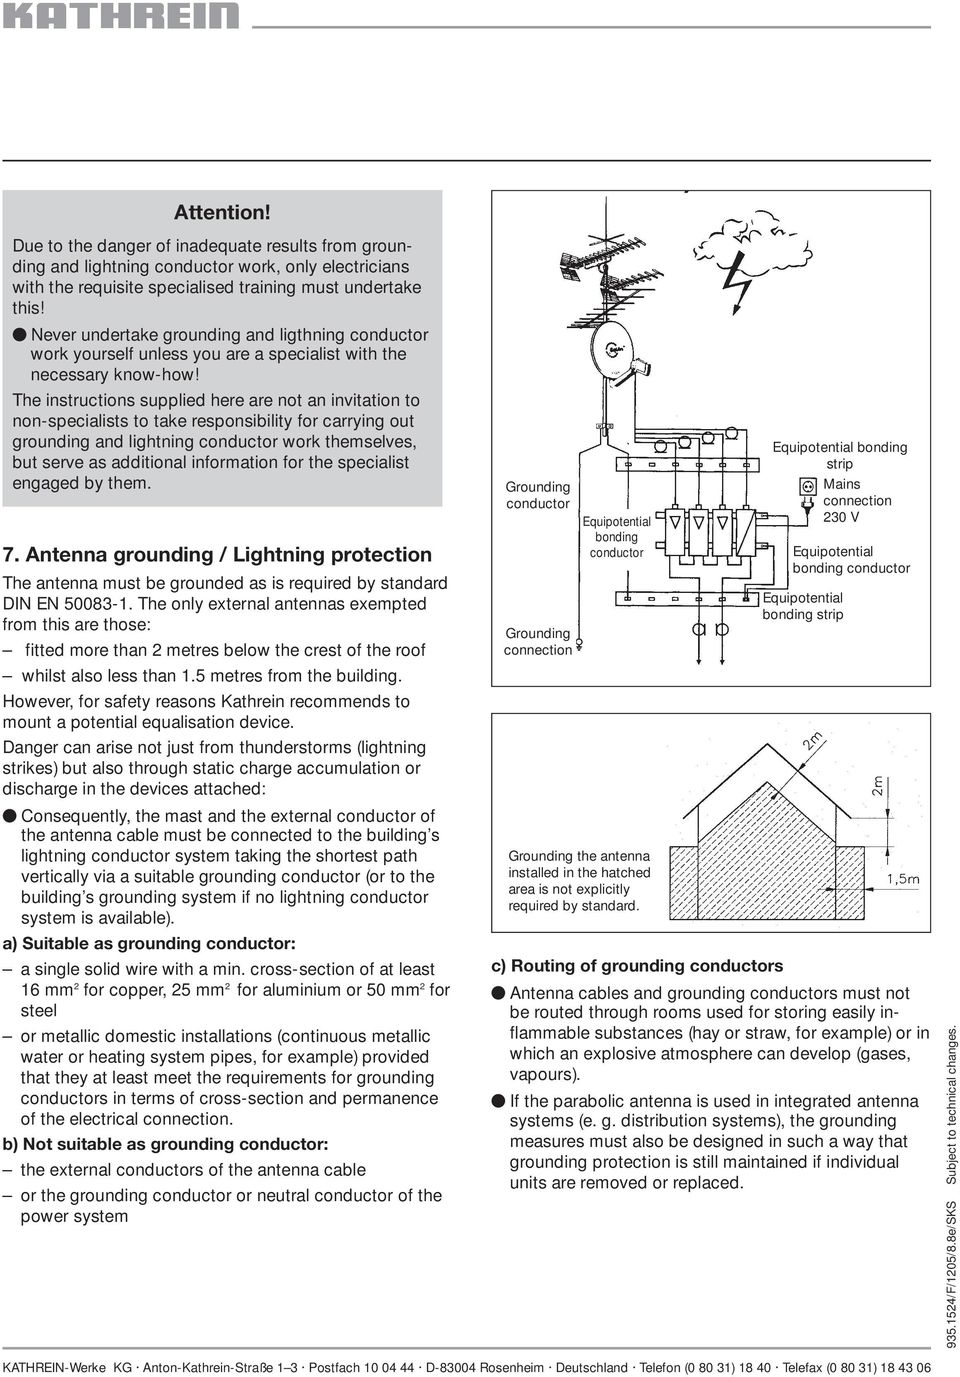 The instructions supplied here are not an invitation to non-specialists to take responsibility for carrying out grounding and lightning conductor work themselves, but serve as additional information